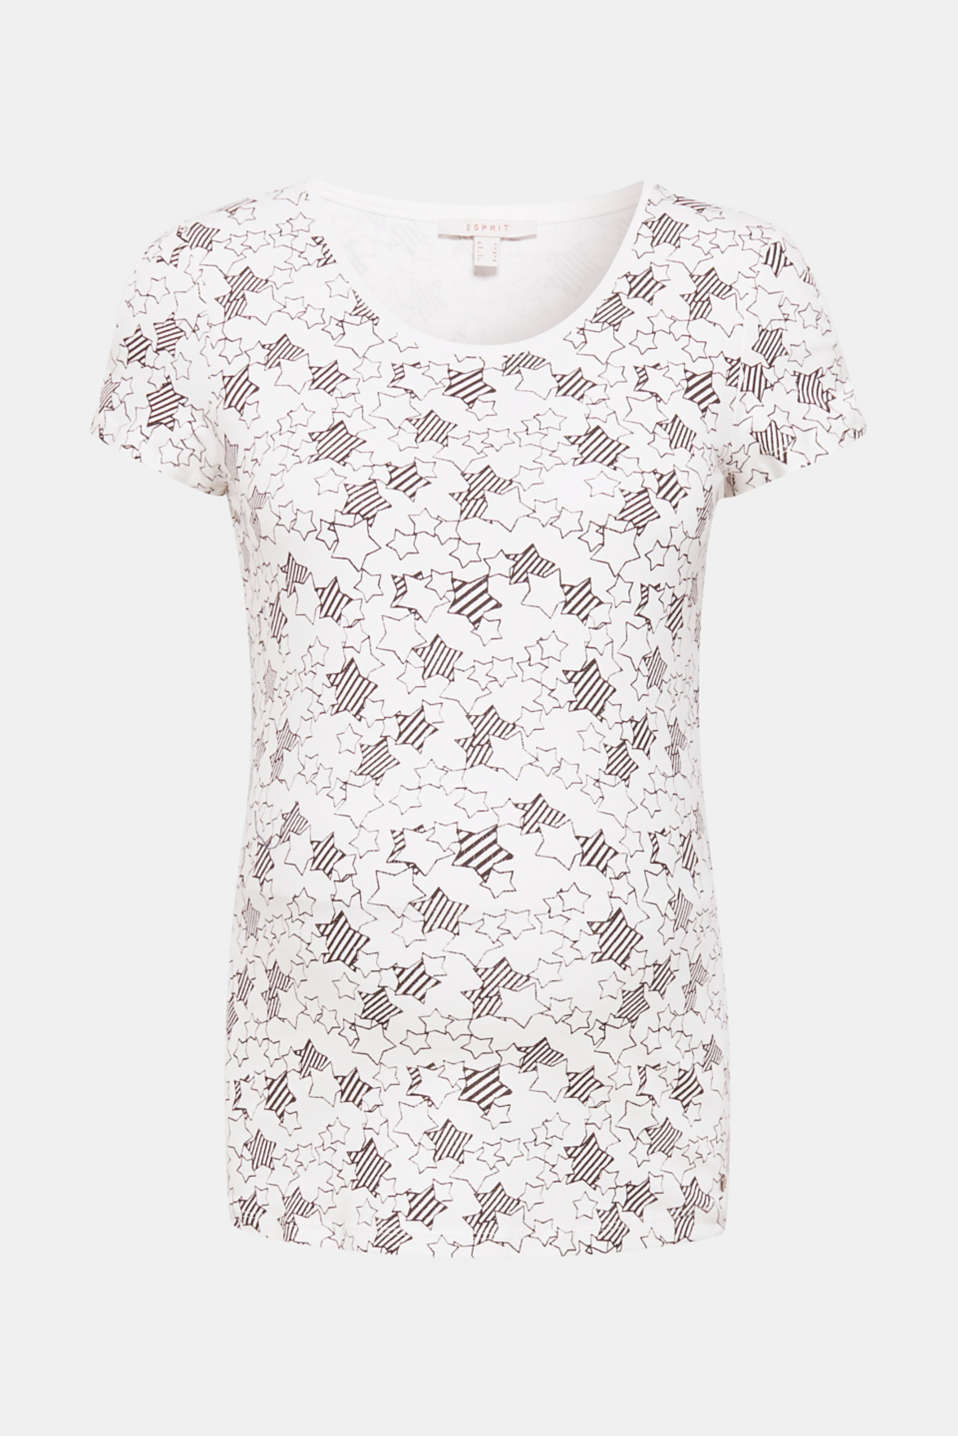 Airy cut-outs on the sleeves and a decorative star print give this stretch top its incredibly trendy look!